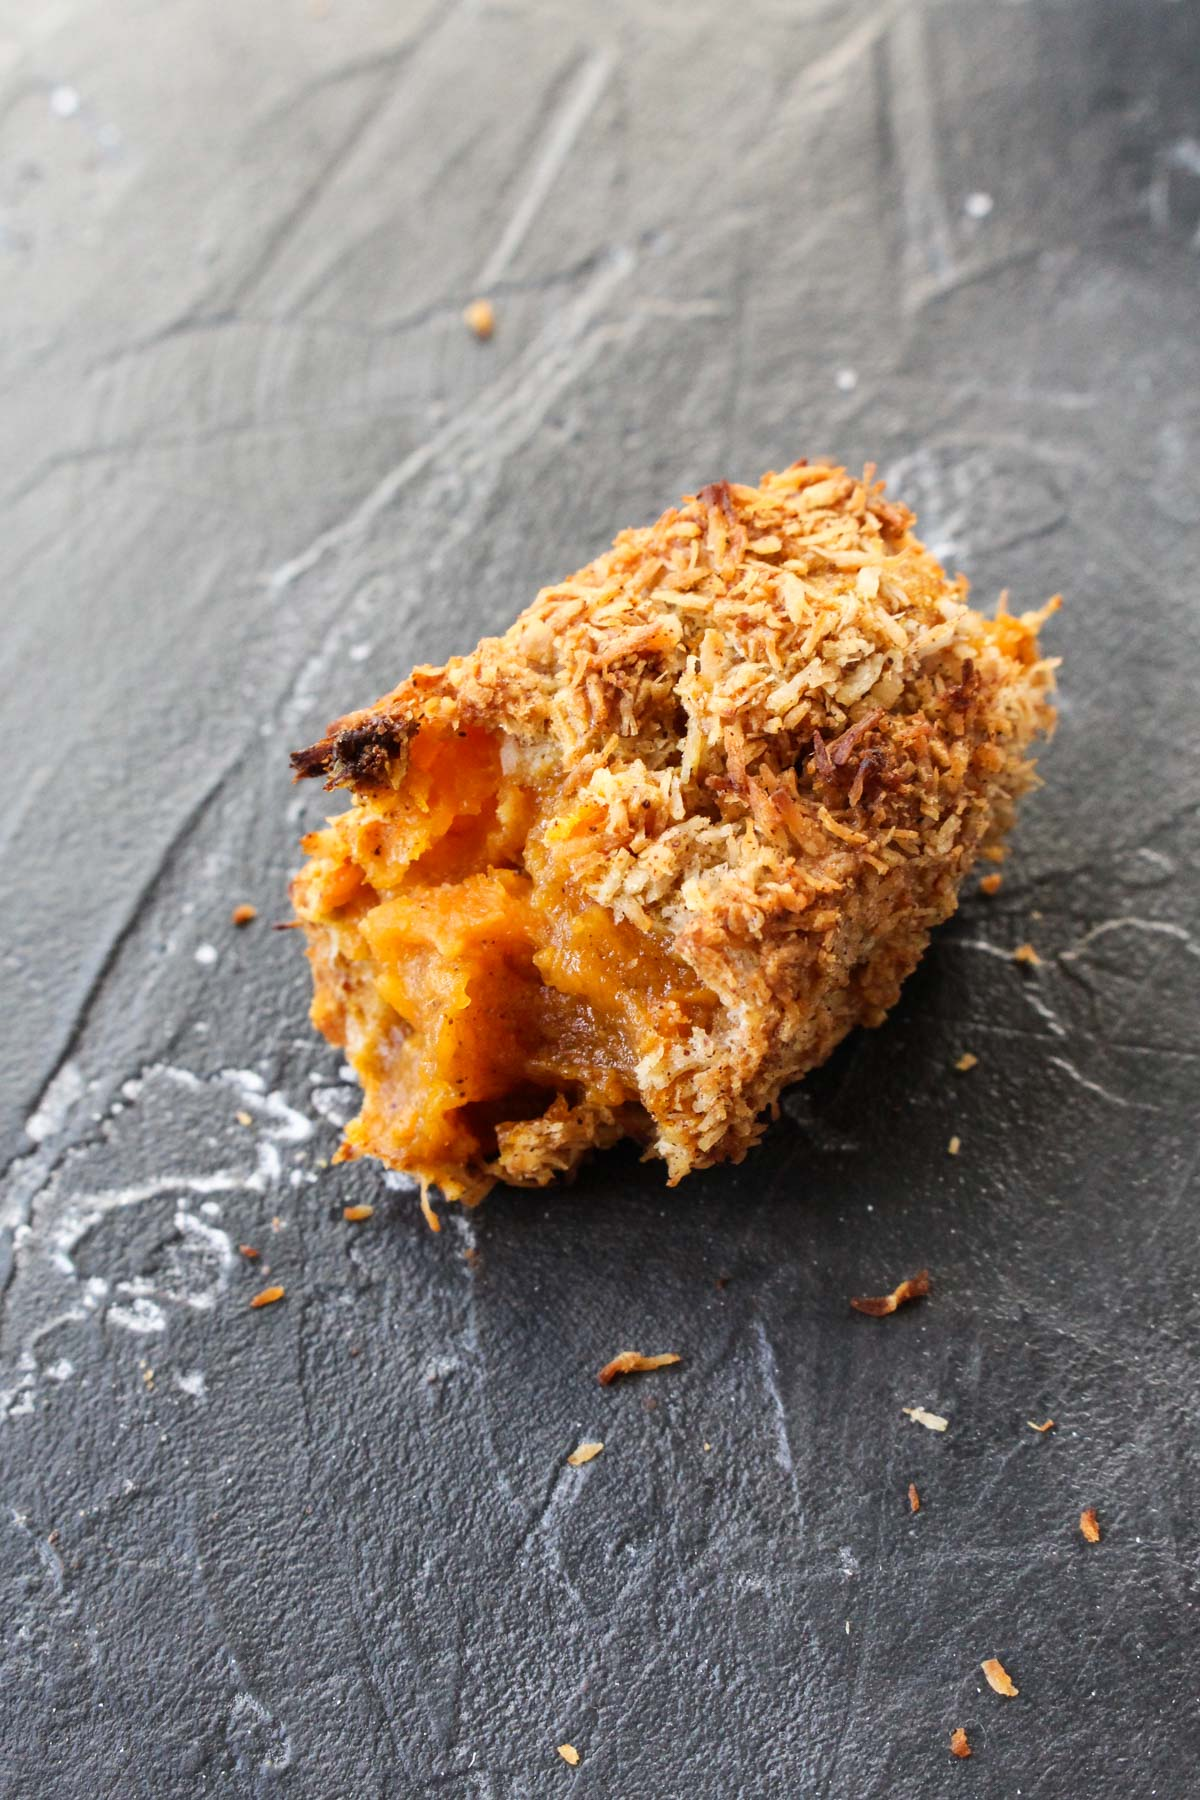 Close up shot of sweet potato tot with a bite taken out.